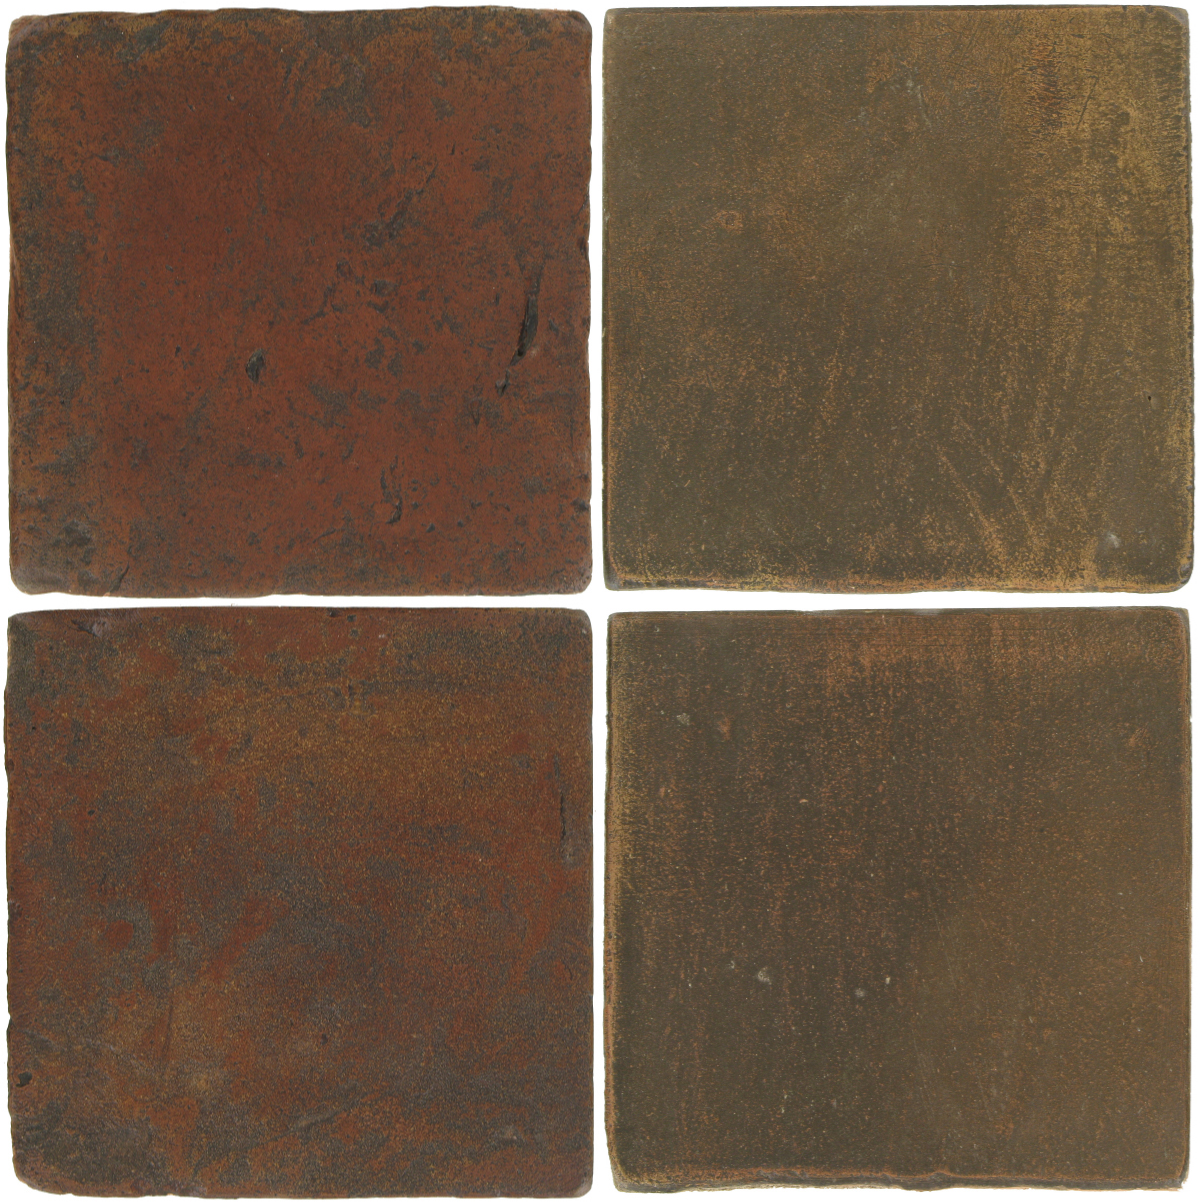 Pedralbes Antique Terracotta  2 Color Combinations  VTG-PSOW Old World + OHS-PSVN Verona Brown